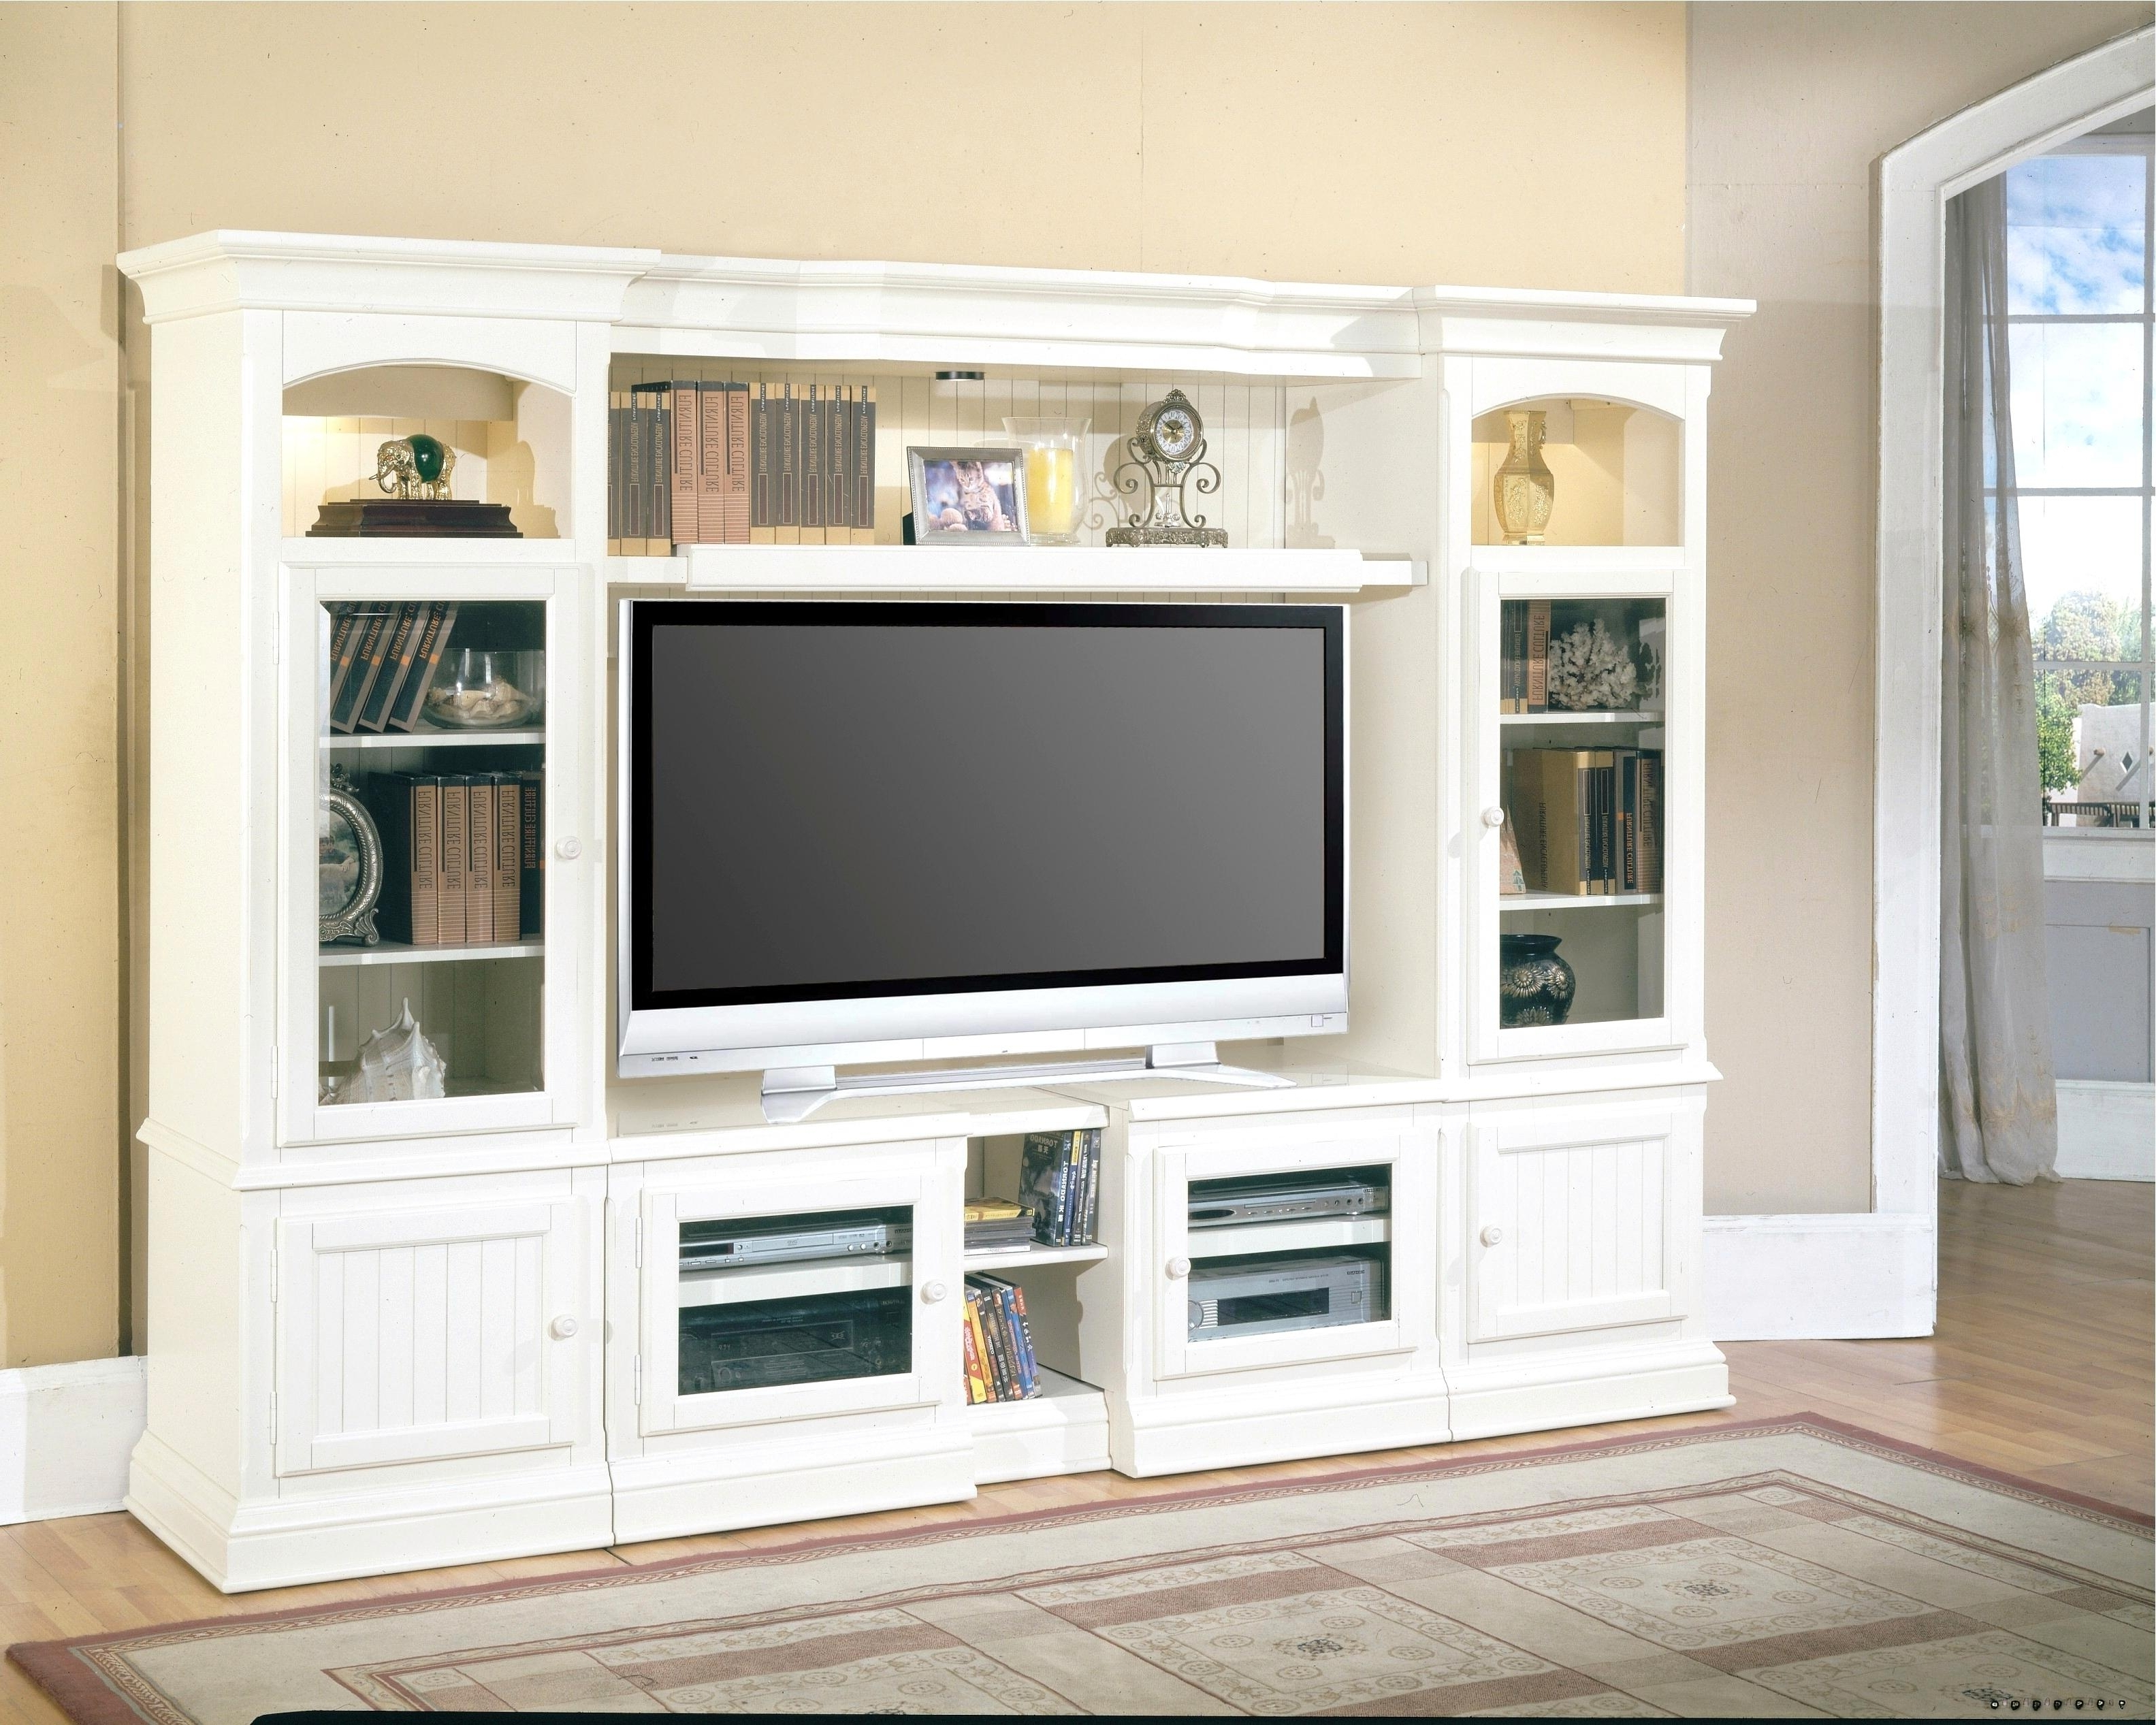 Showing Gallery of Tv Wall Units (View 13 of 15 Photos)